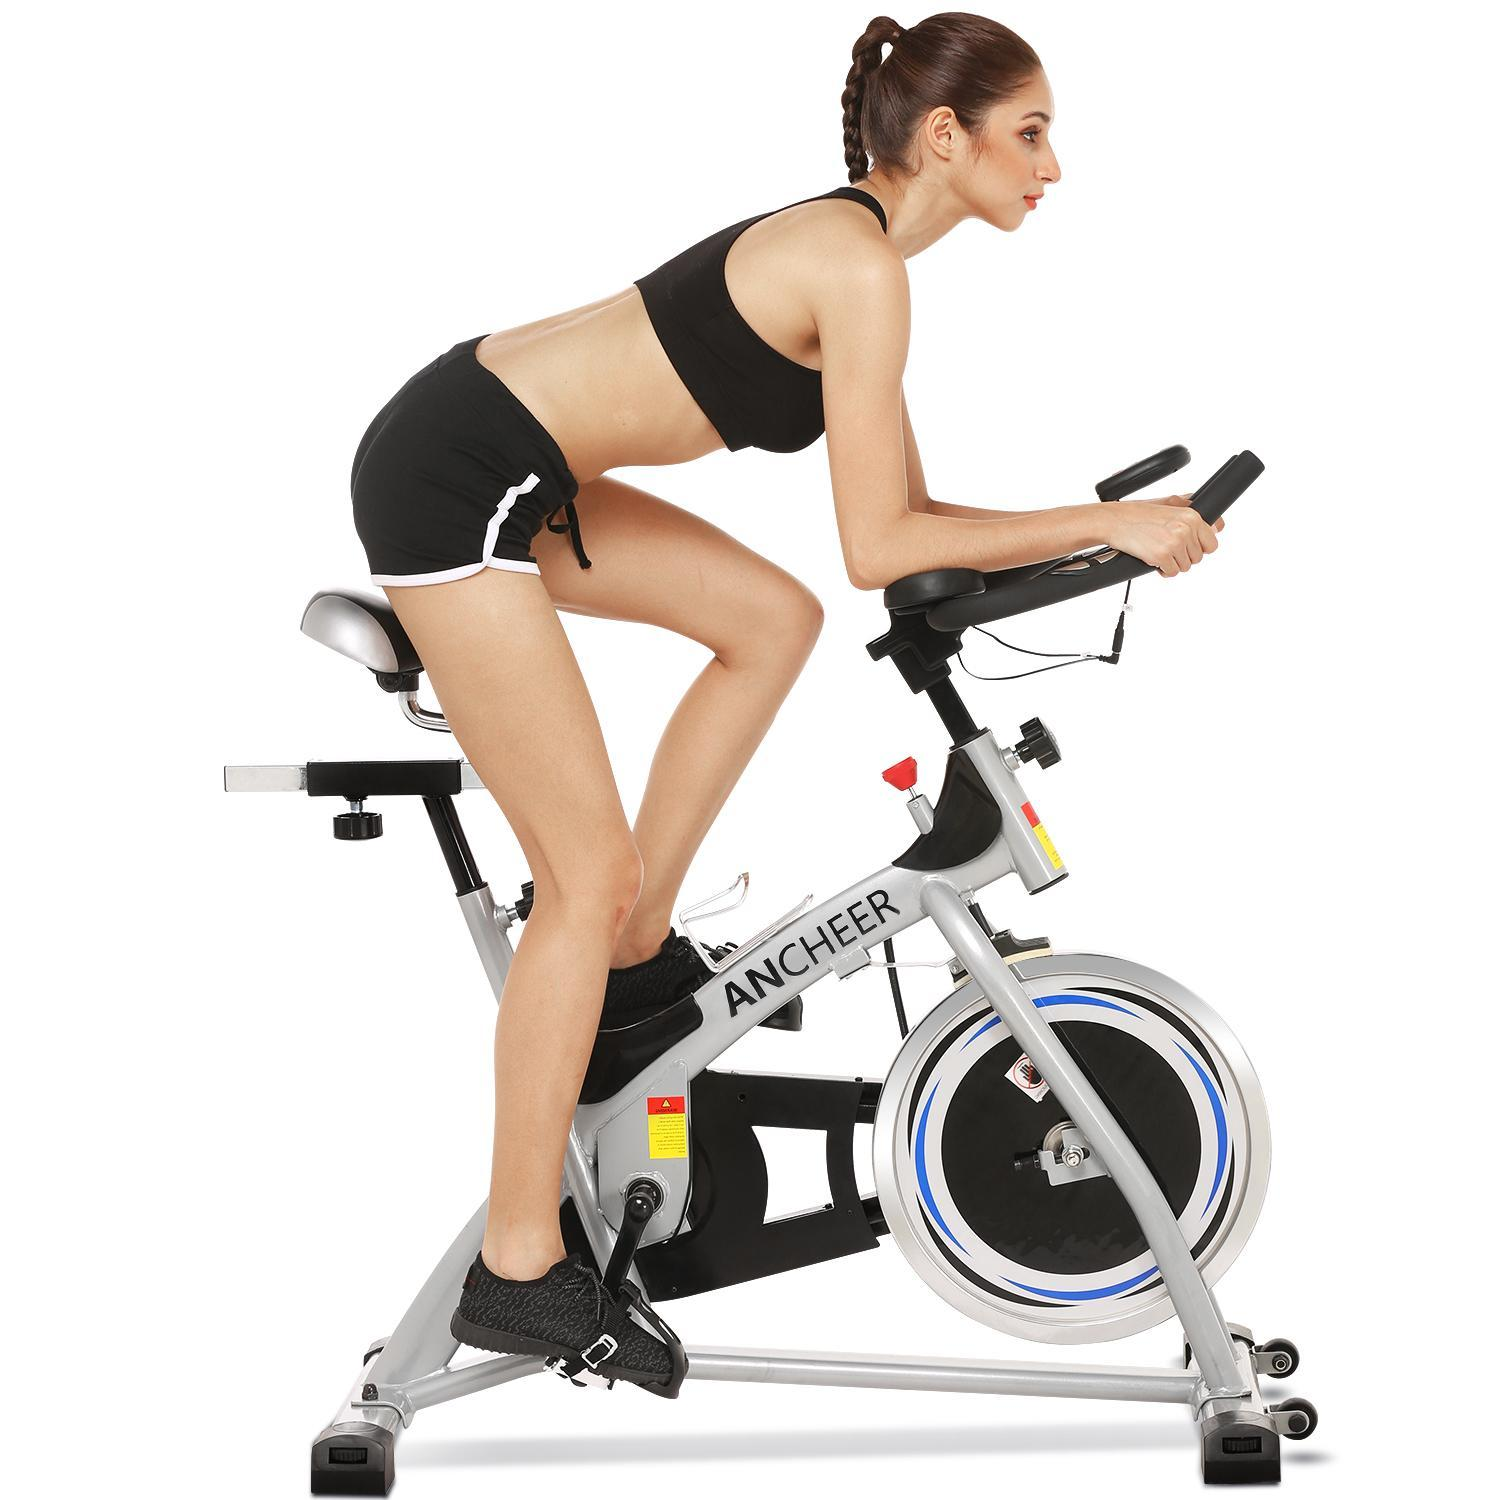 C hristmas Day Clearence&Sale!!!  Studiostore Home Gym Fitness Indoor Bike Cycling Training Exercise Bike STDTE